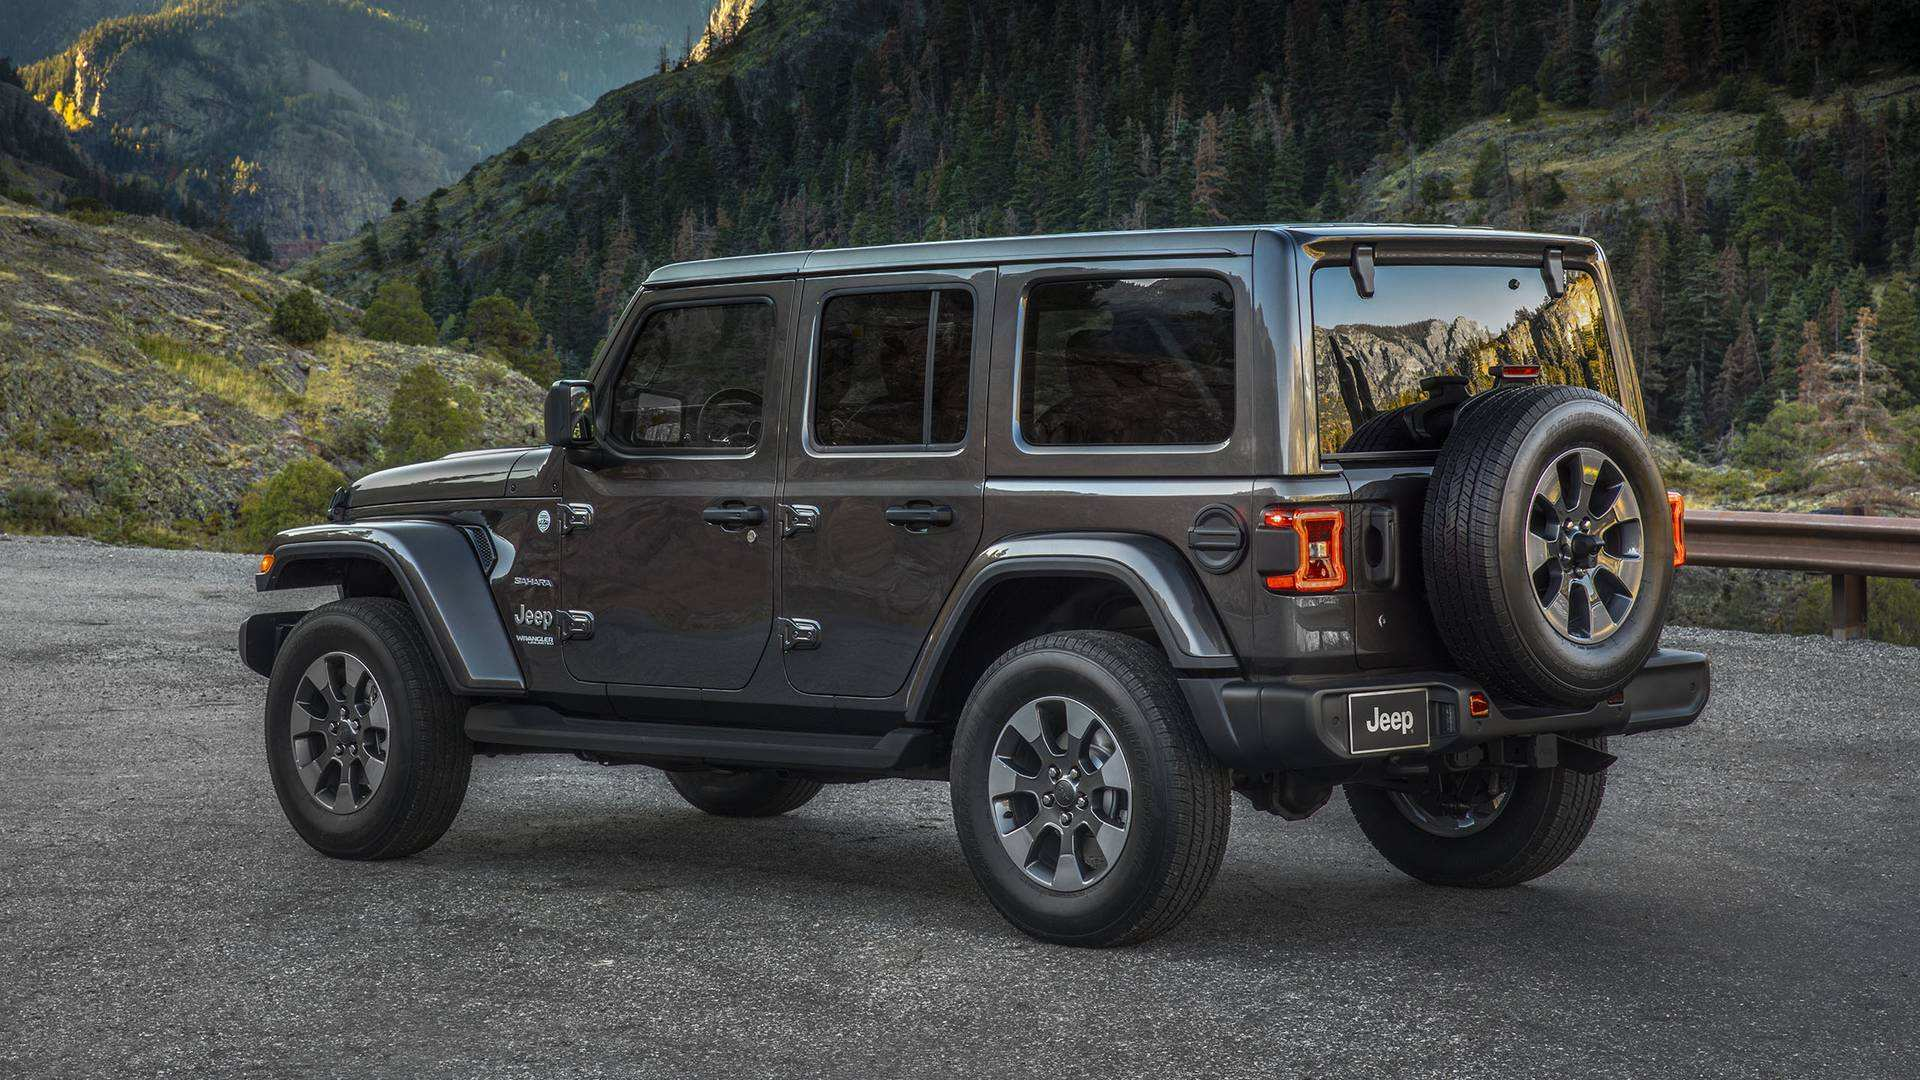 63 Great Best Jeep 2019 Orders Price And Release Date Performance and New Engine for Best Jeep 2019 Orders Price And Release Date